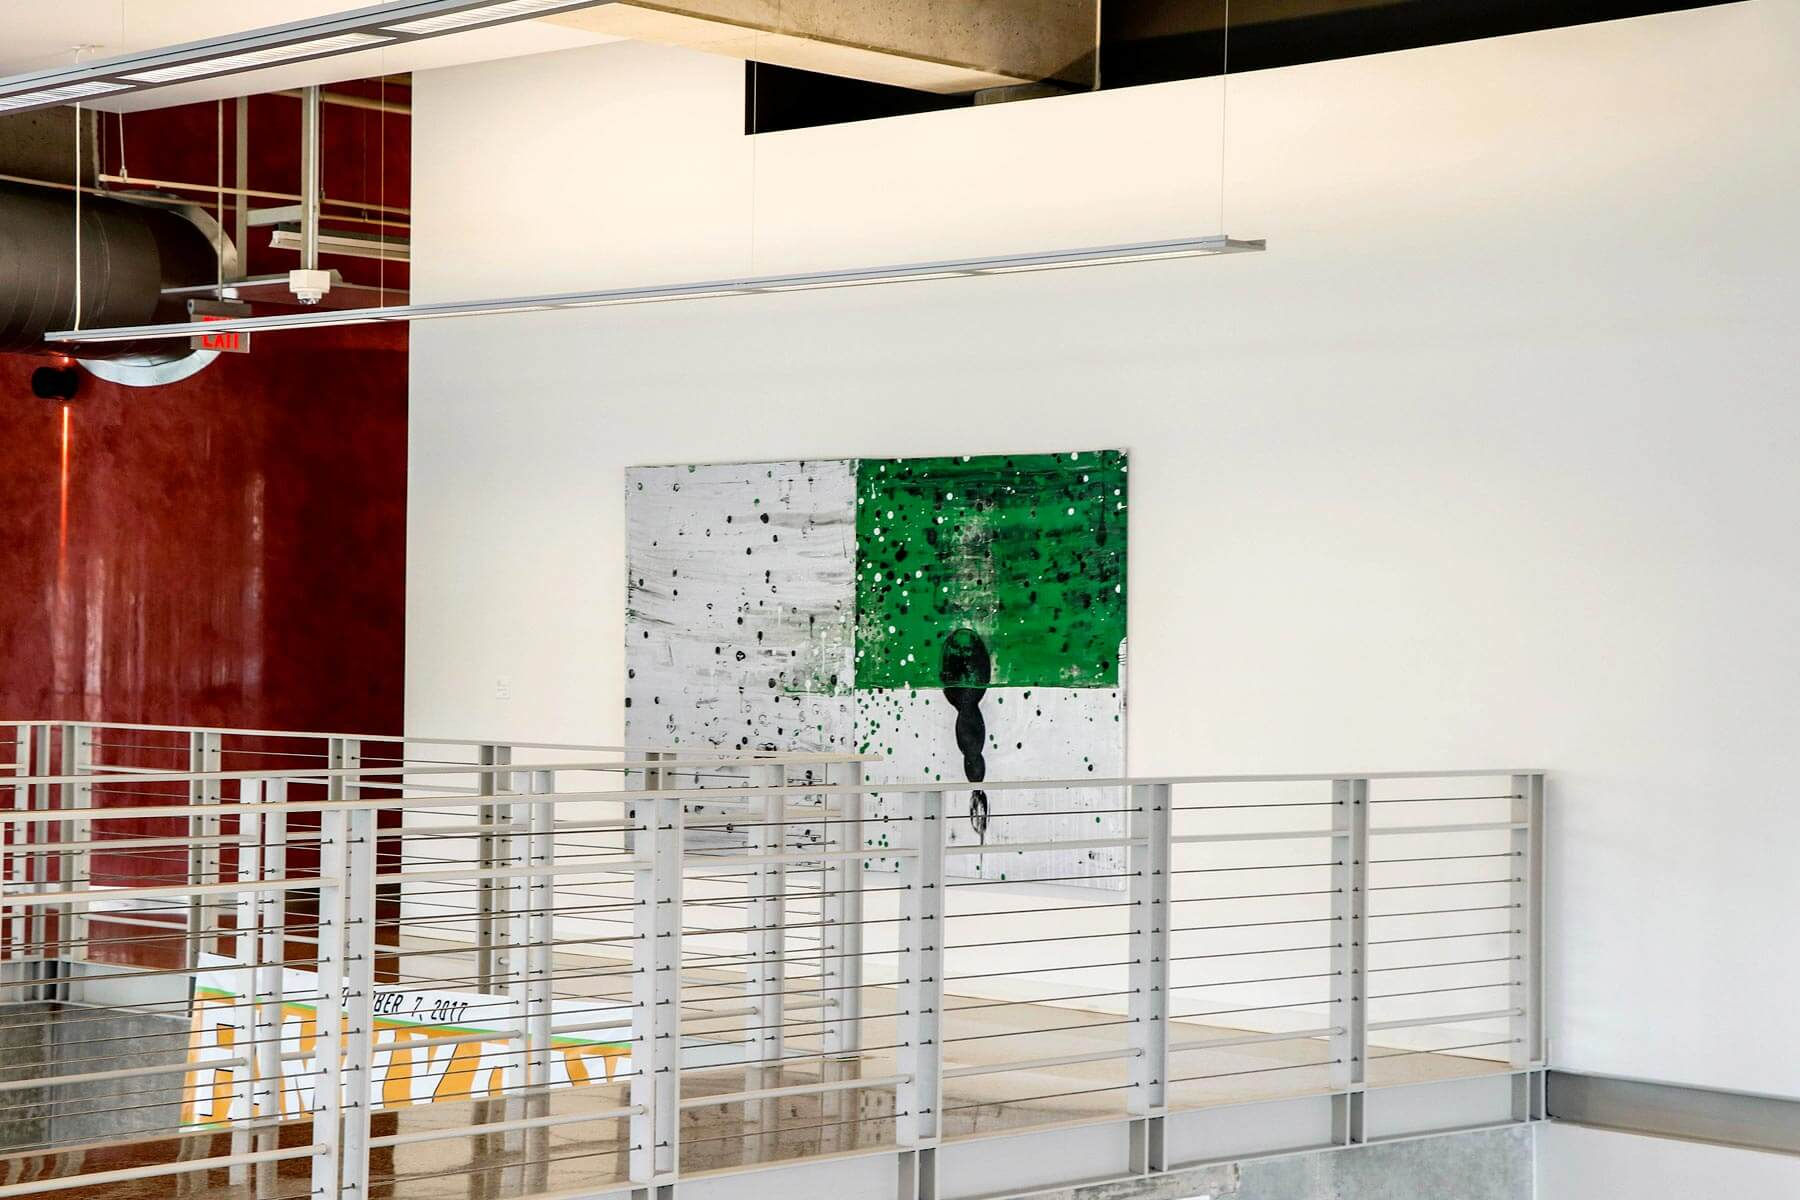 green and white painting inside ATEC building, slide 6